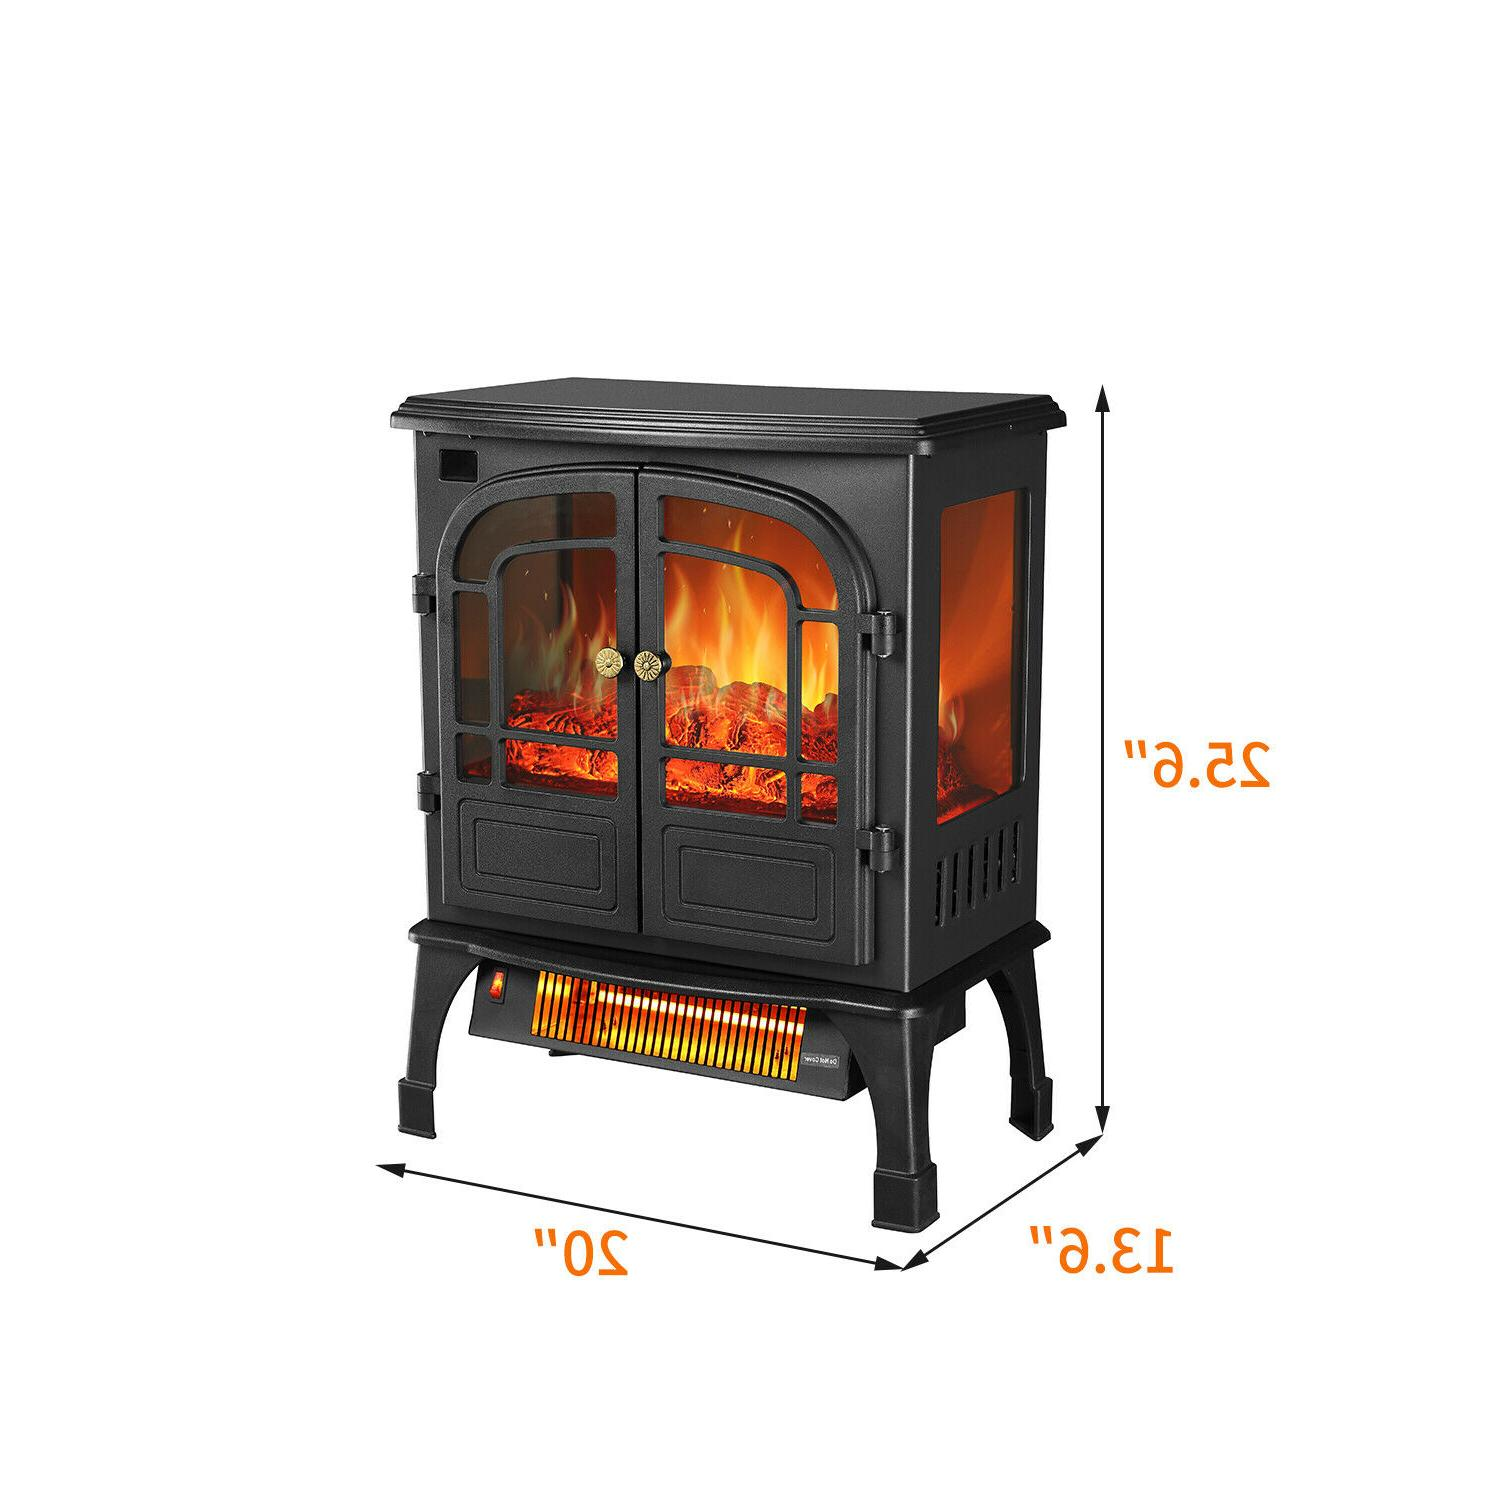 Protable Indoor Stove Heater Realistic with Remote